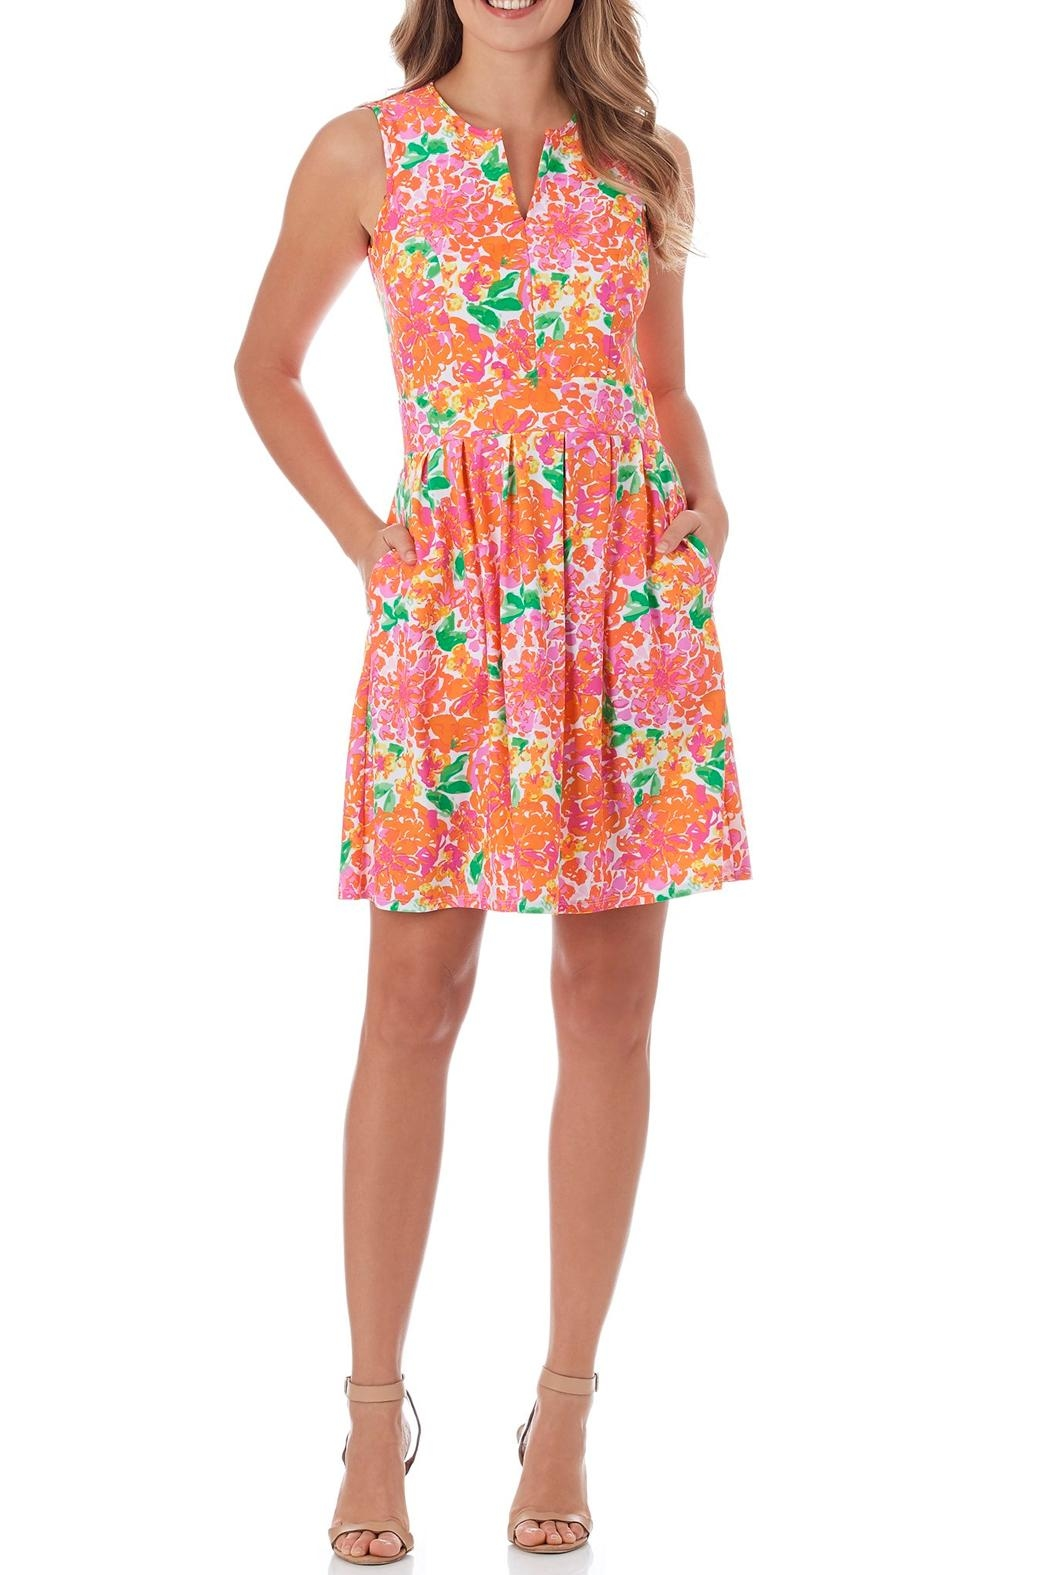 Jude Connally Julie Fit-n-Flare Dress - Main Image